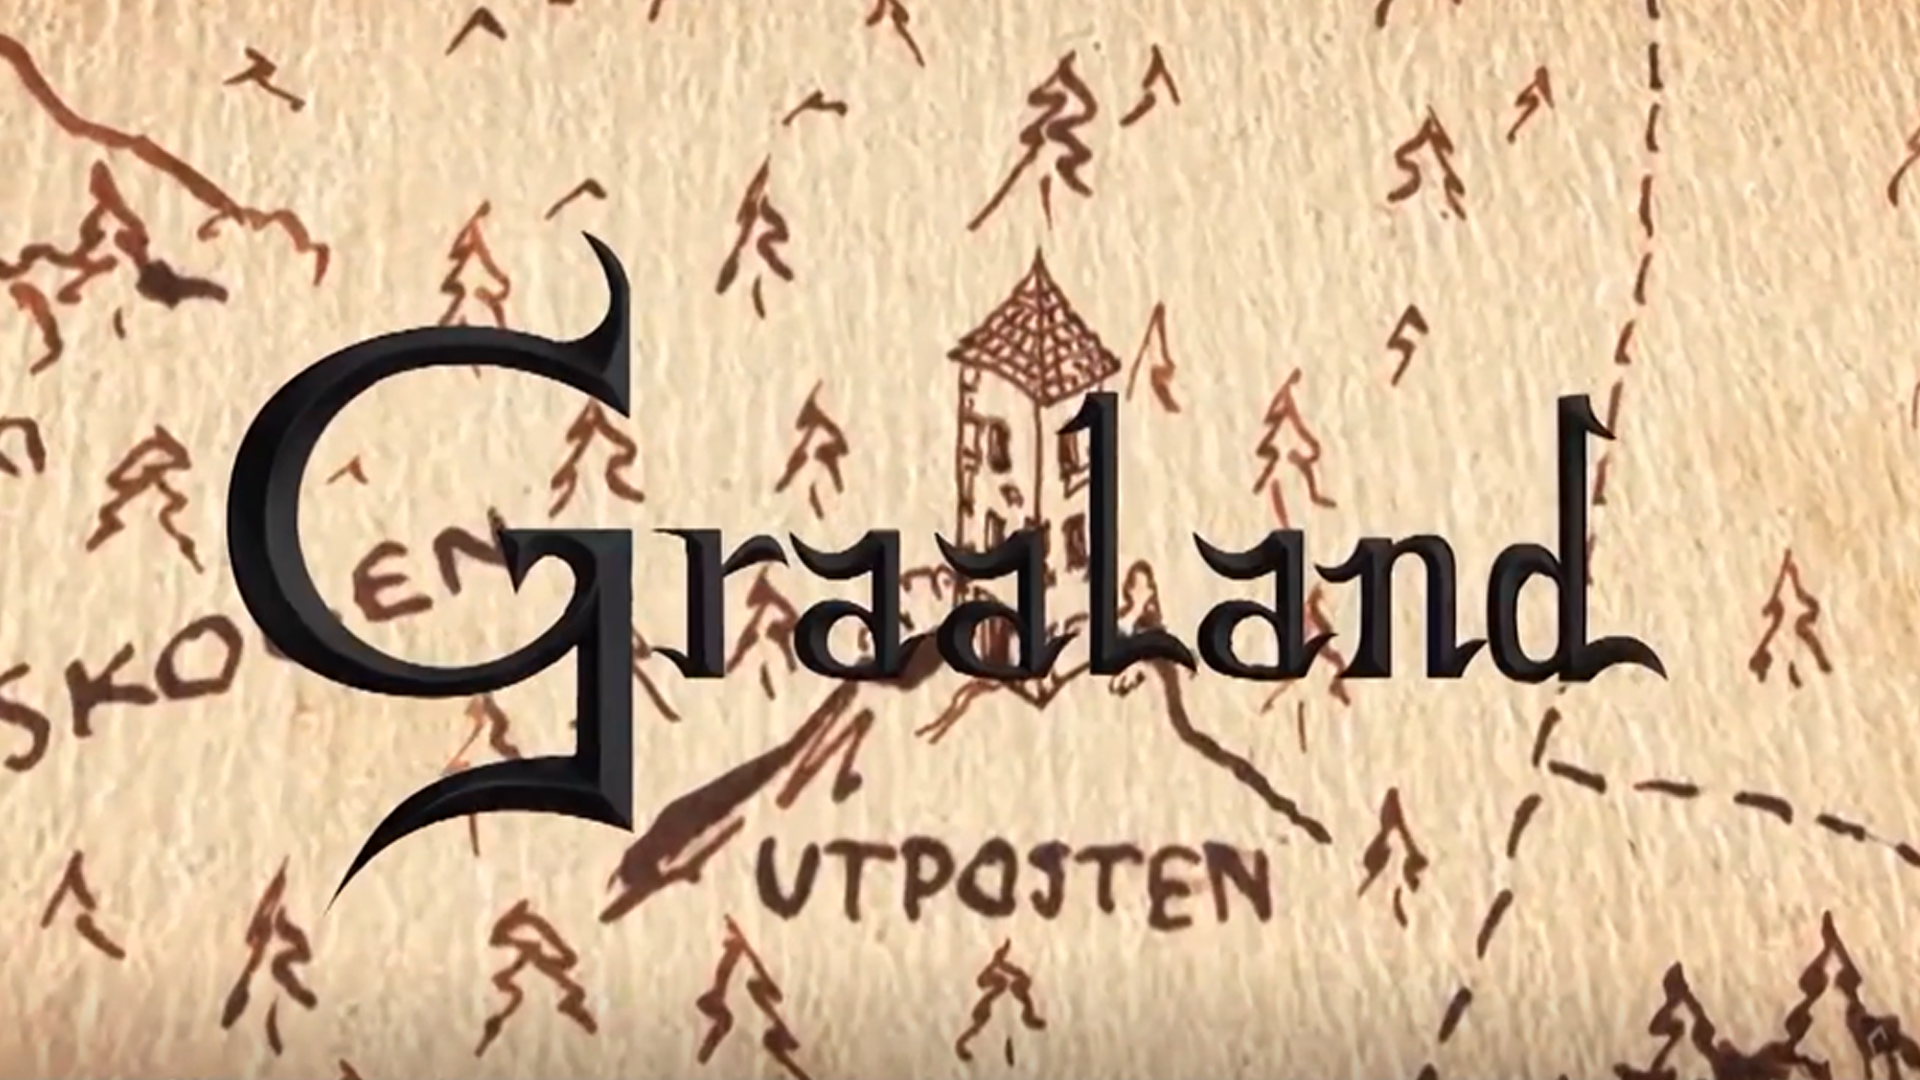 Graaland Prologue